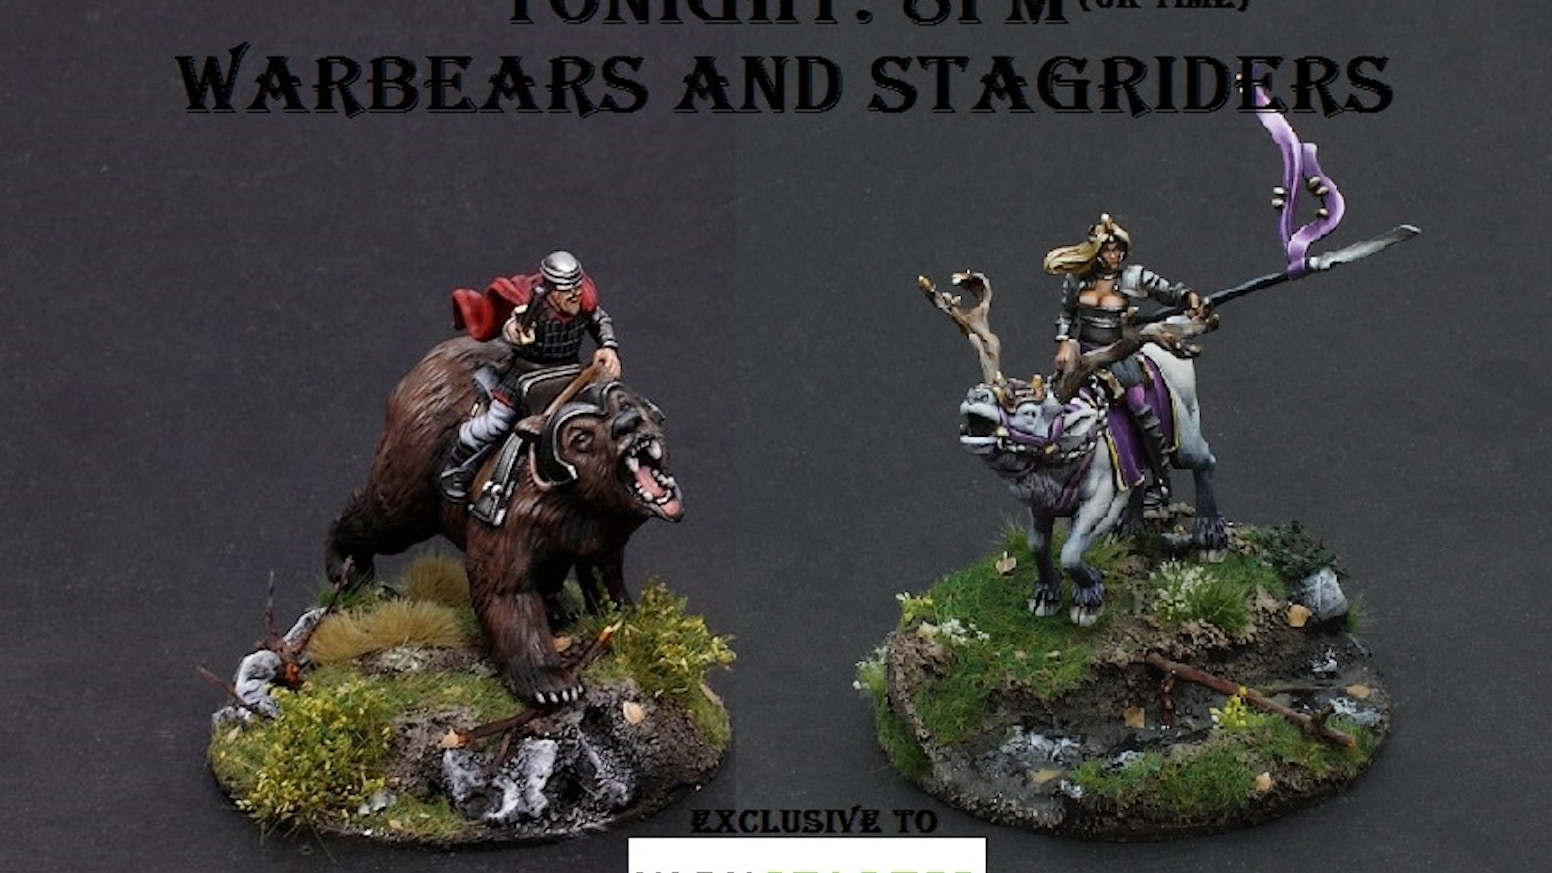 Warbears and Stagriders, Fantasy Wargames Miniatures by Mike